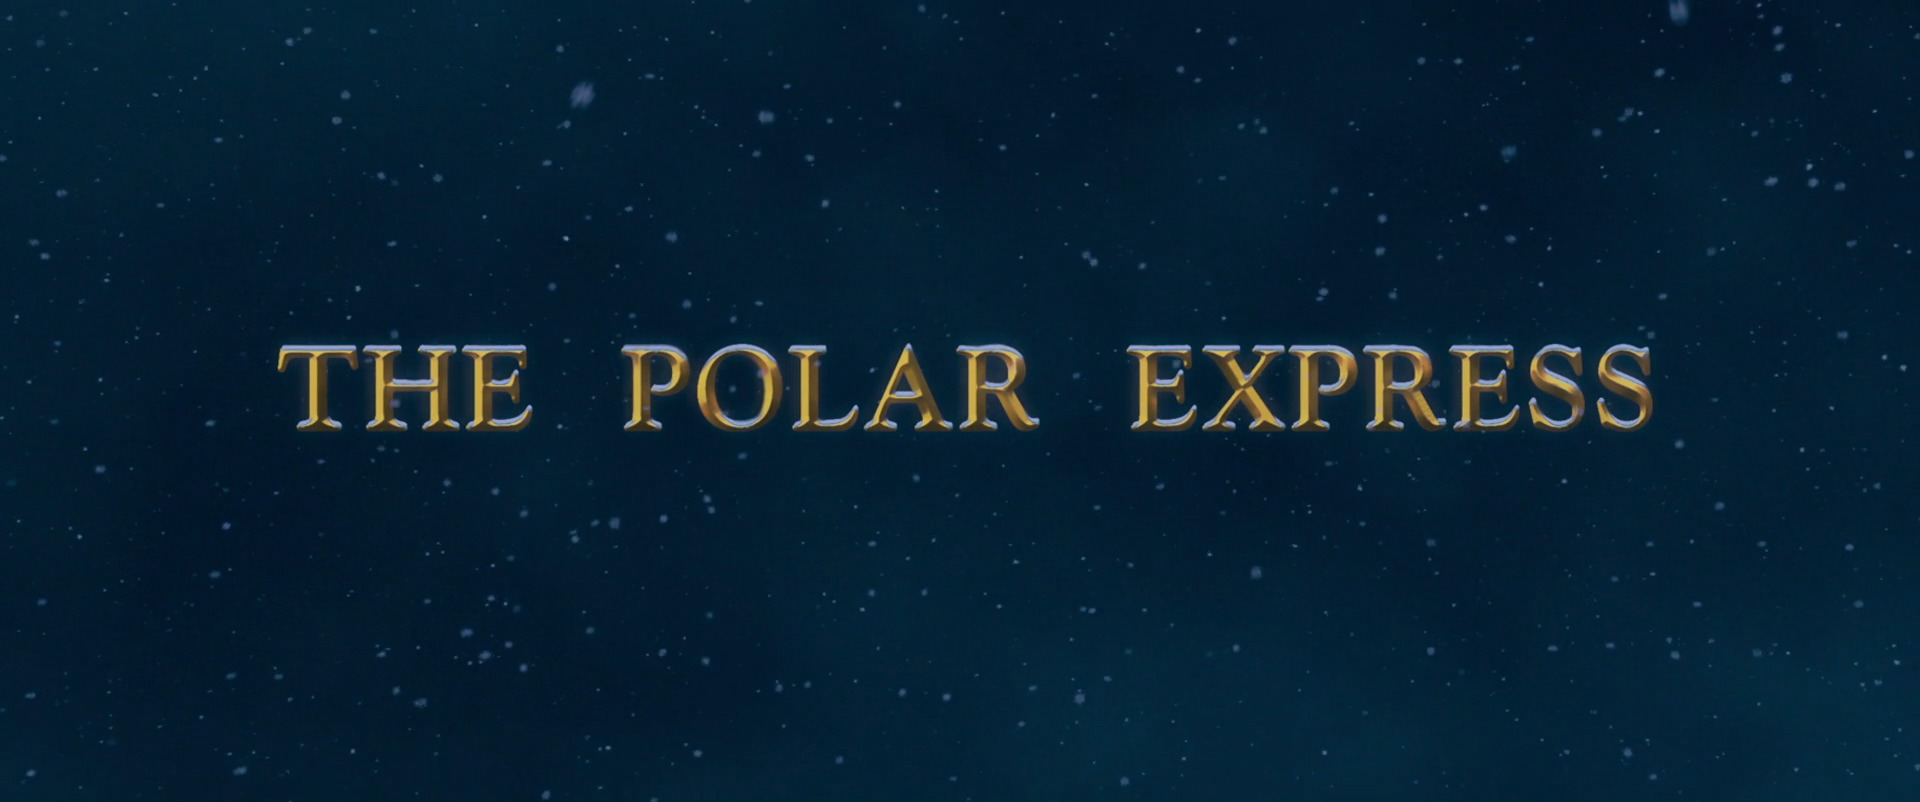 The Polar Express | Christmas Specials Wiki | Fandom